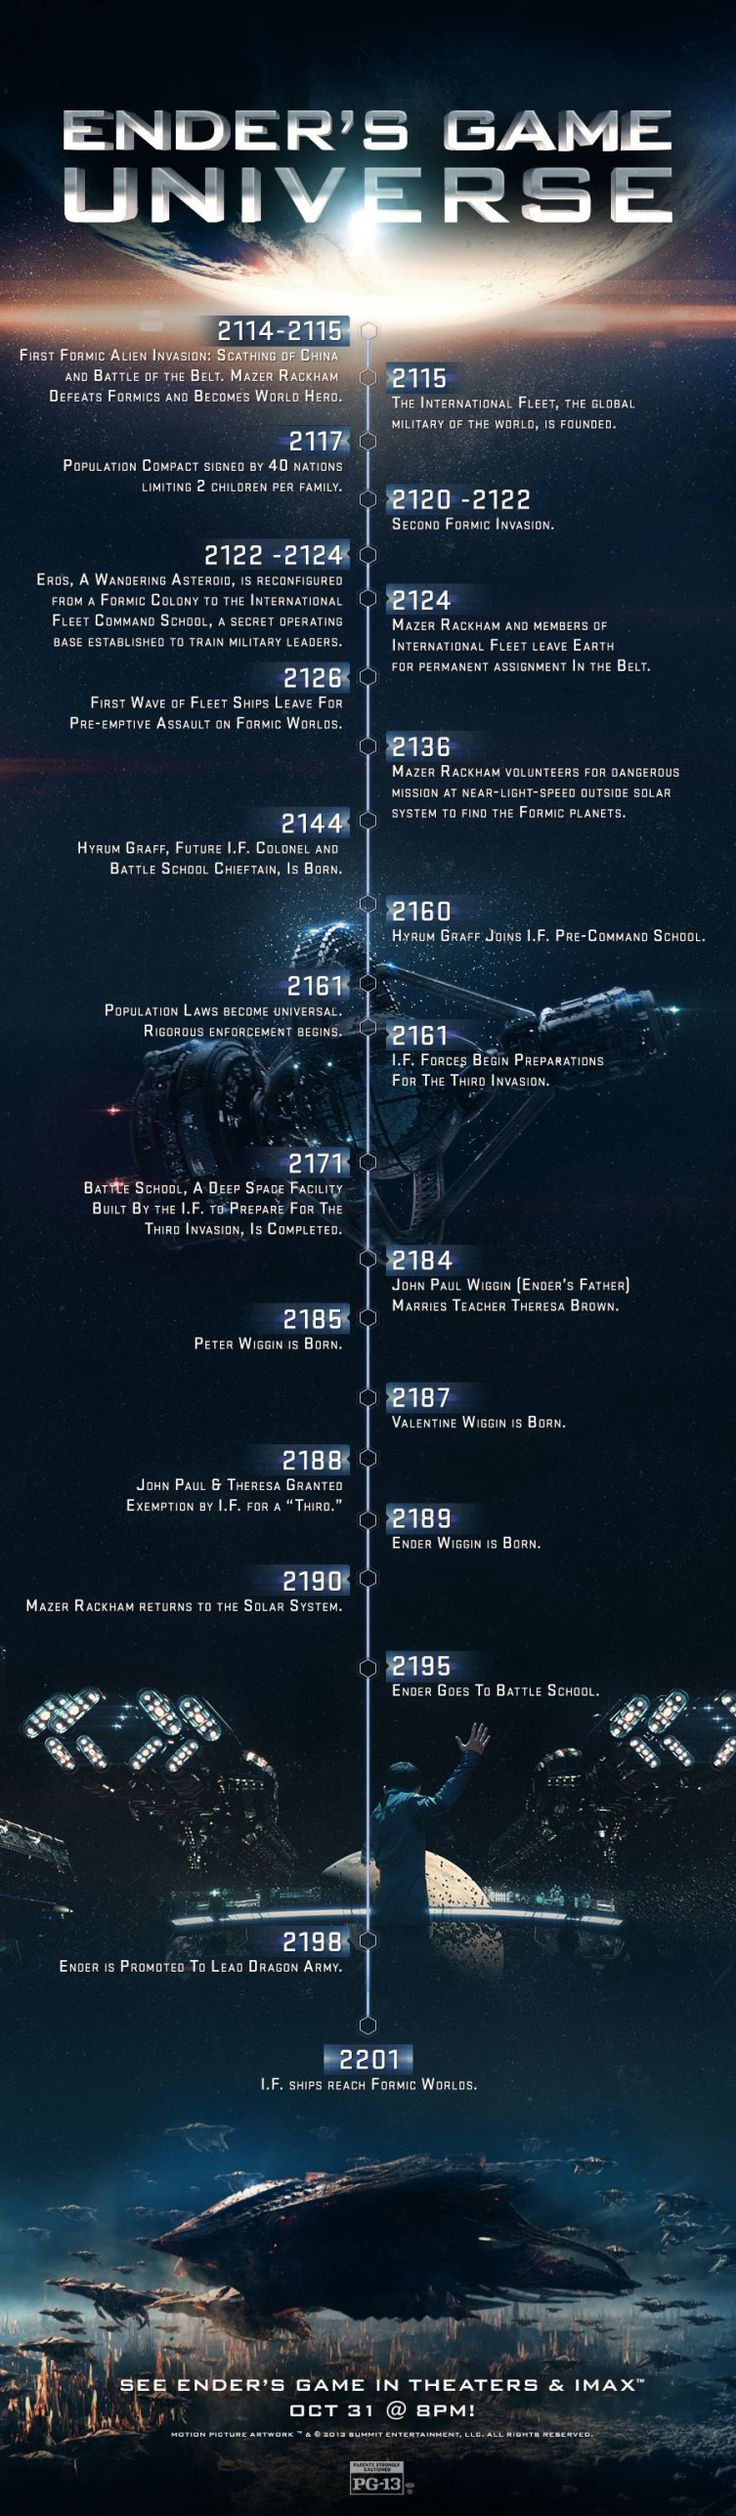 Ender's Game Chronology Infographic